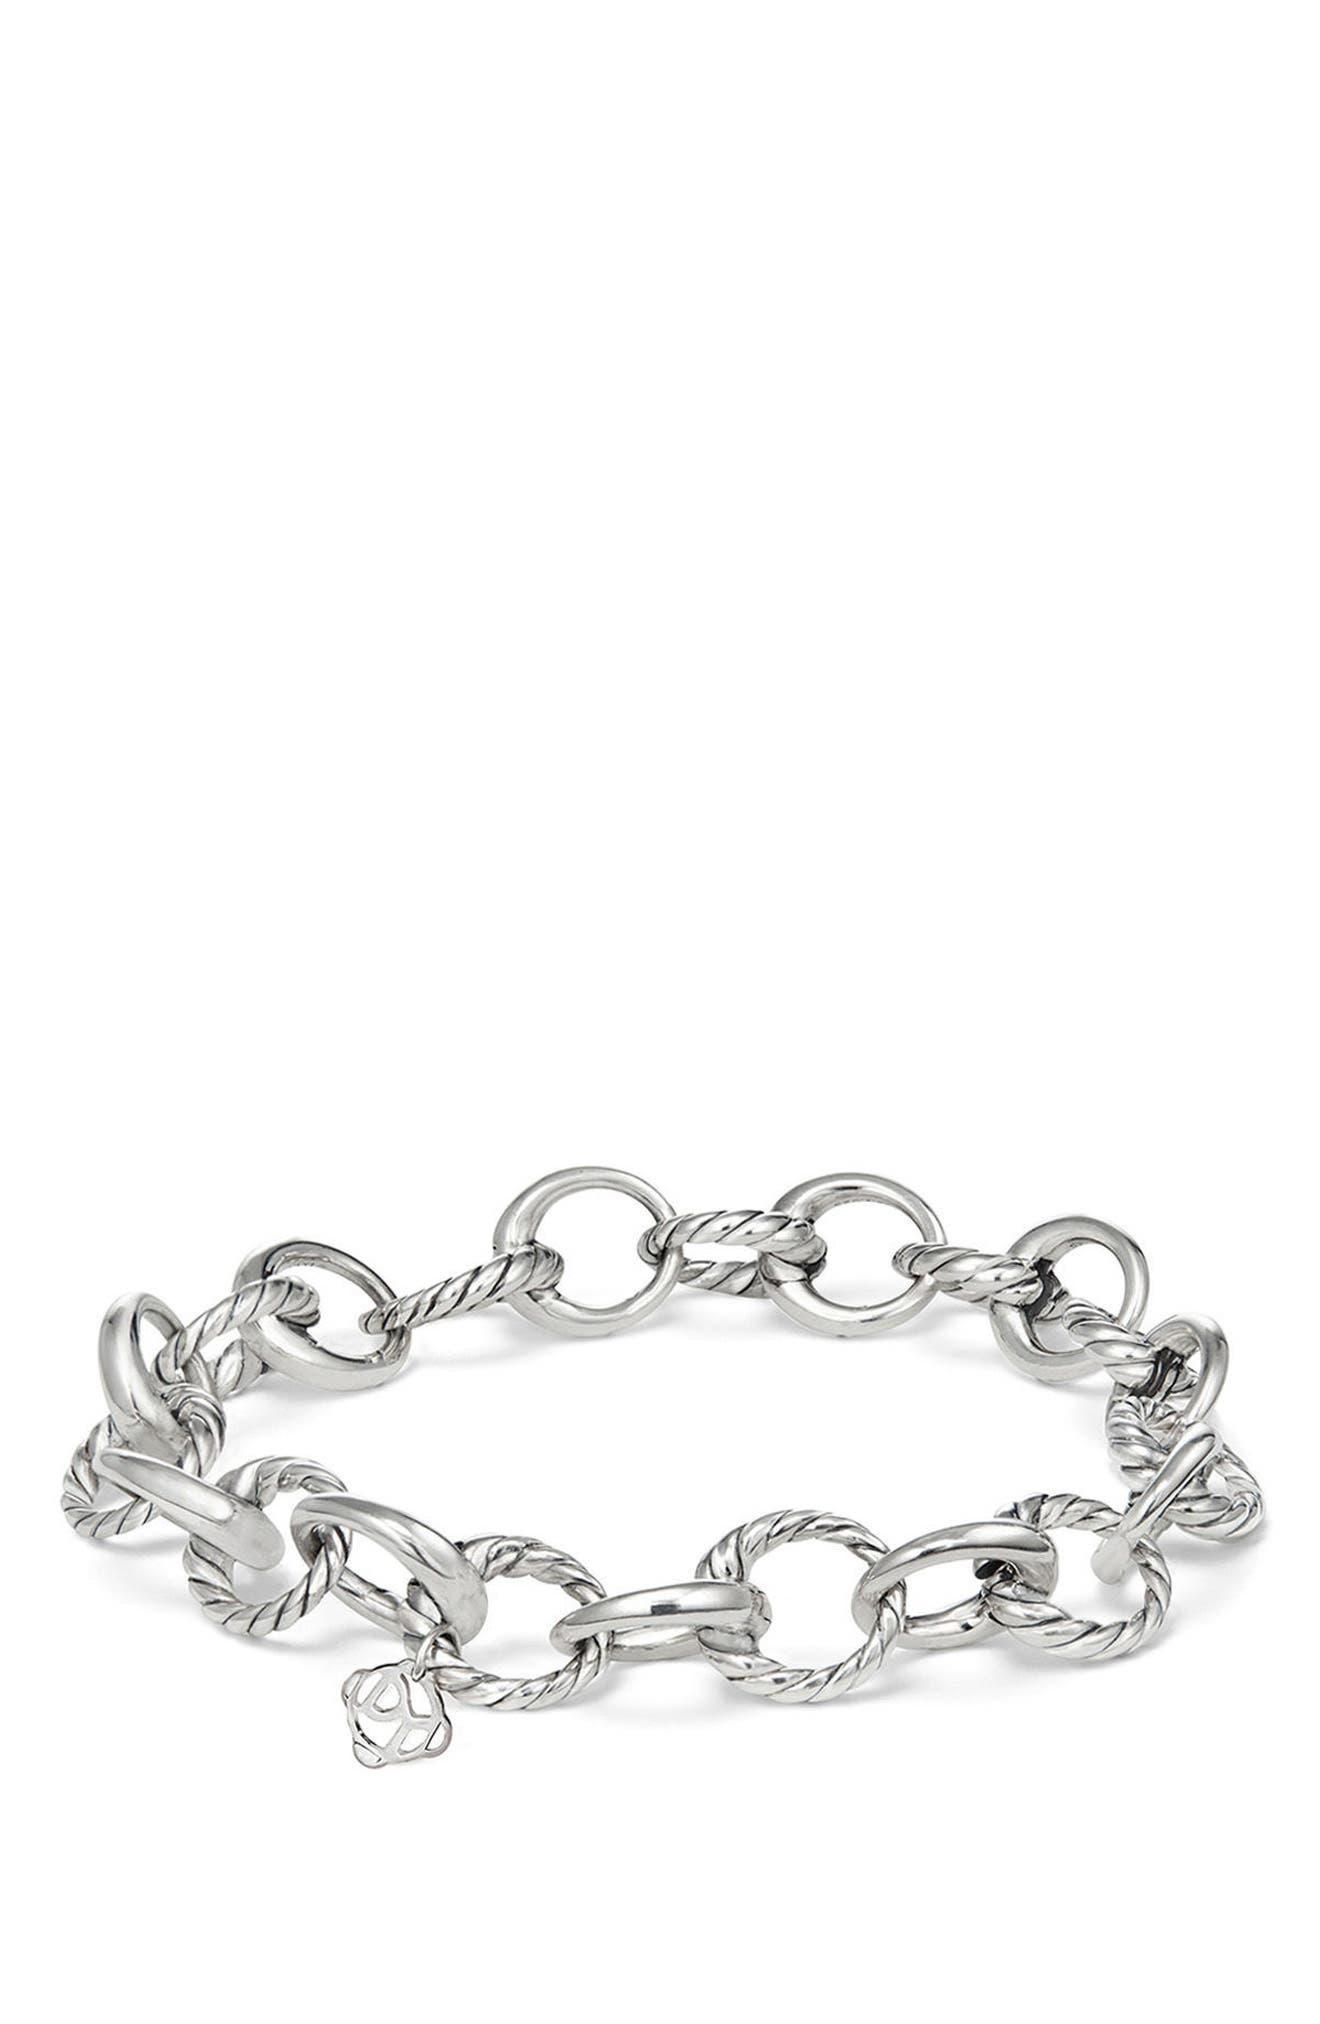 Main Image - David Yurman Cable Collectives Oval Link Charm Bracelet